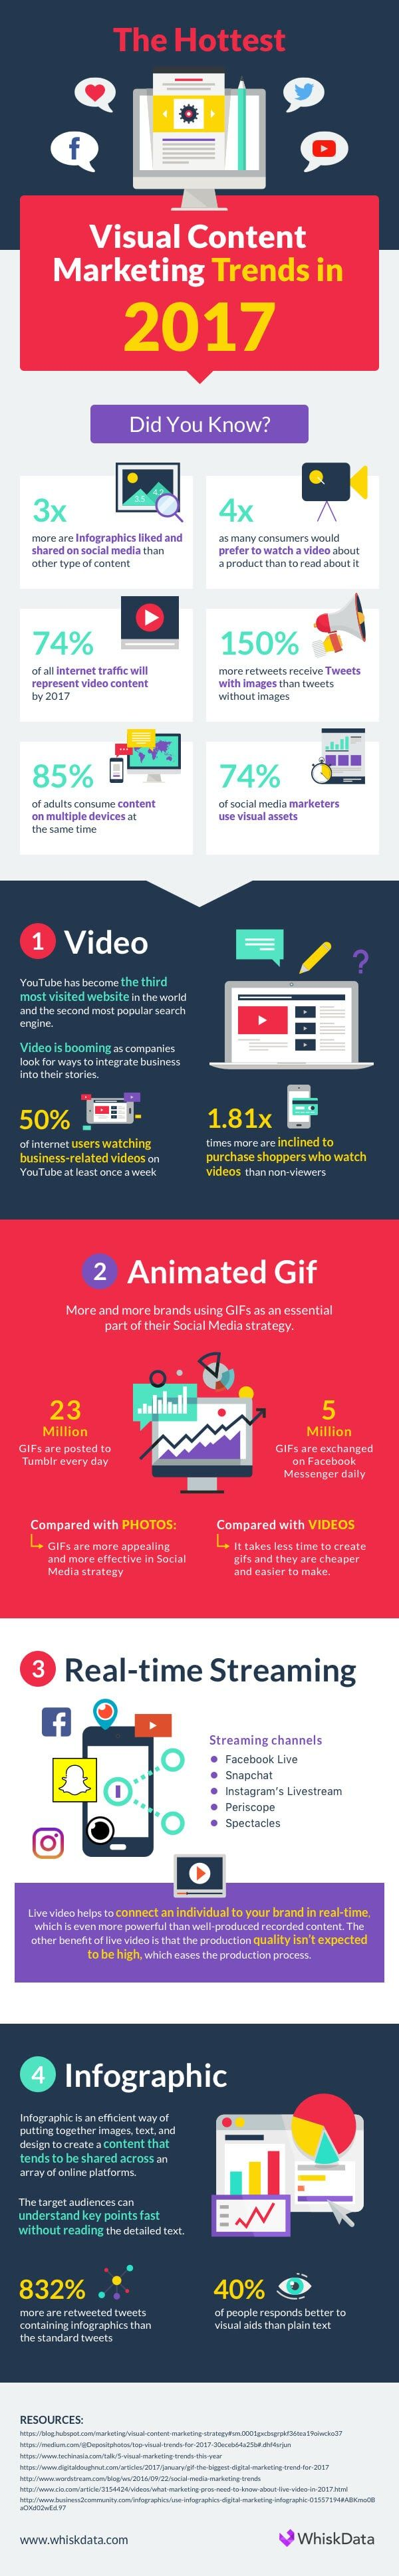 The Hottest Visual Content Marketing Trends for 2017 [infographic]